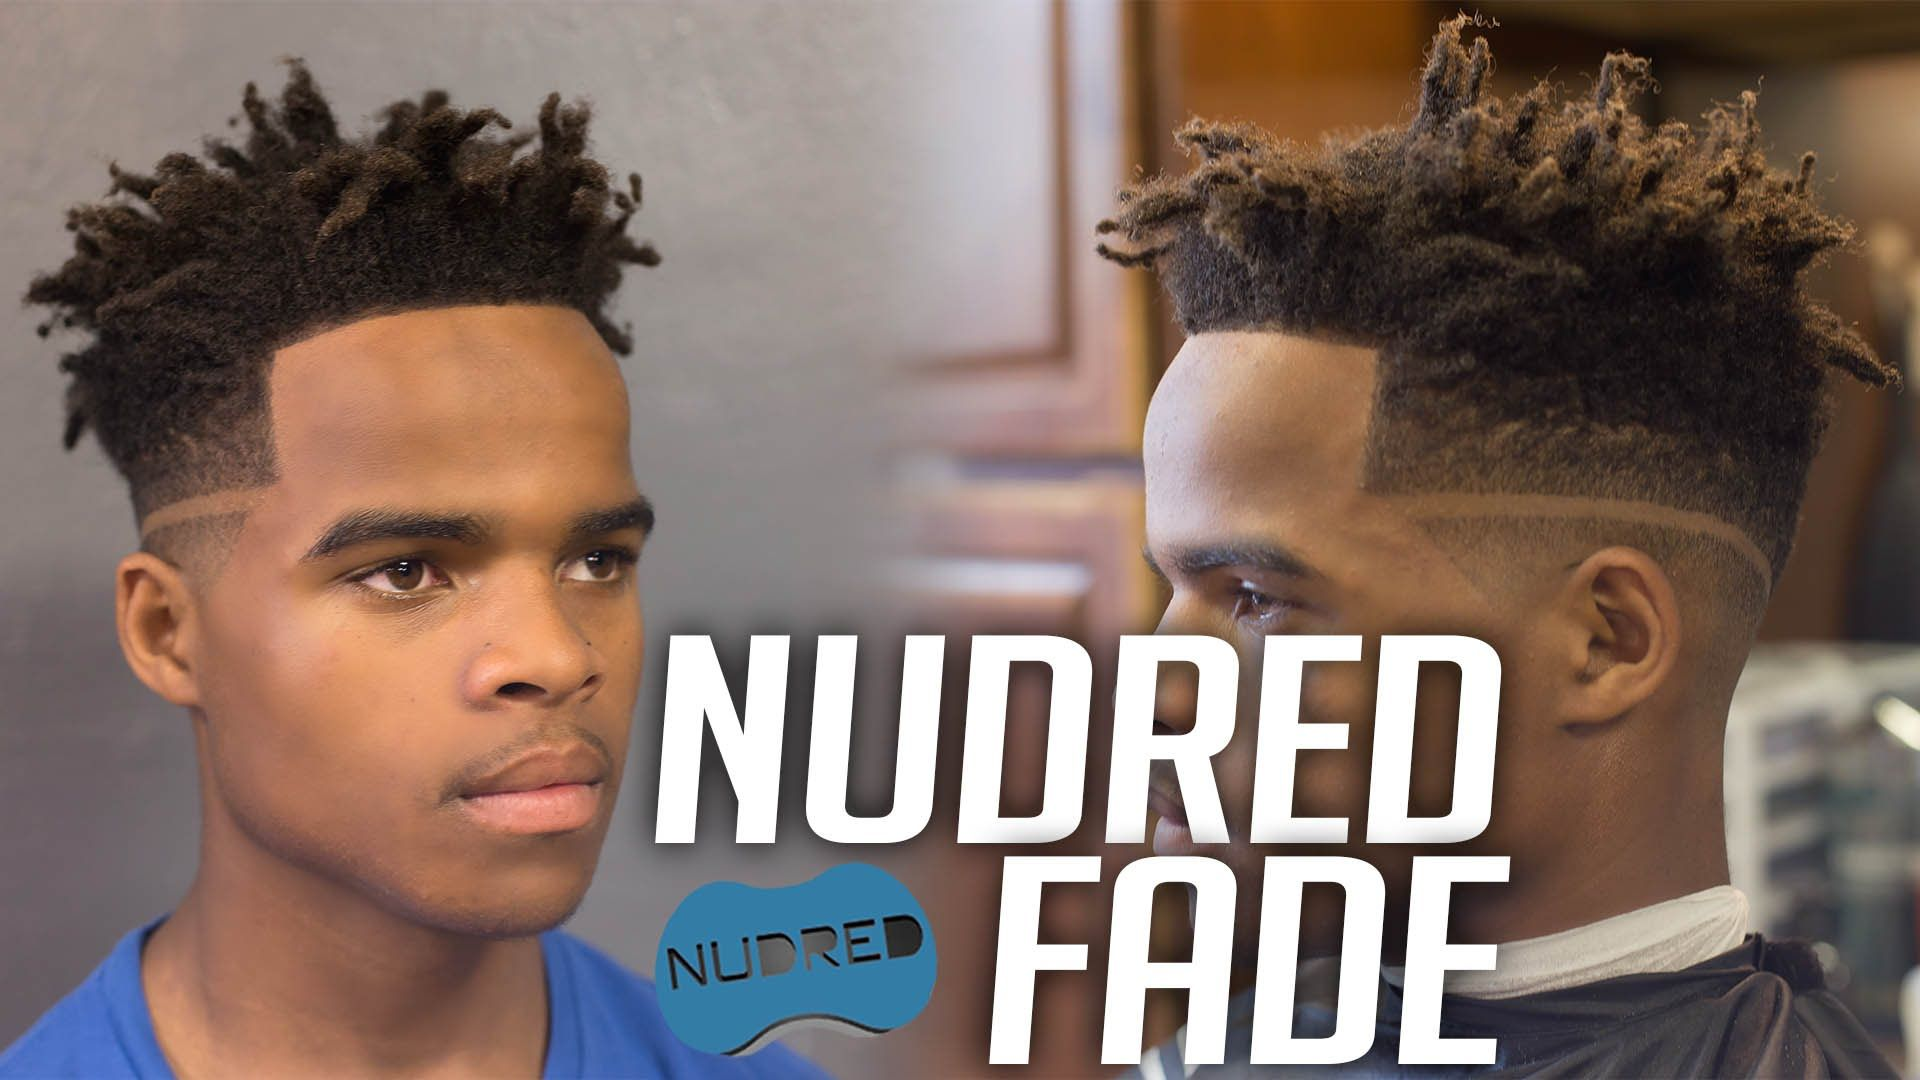 How To Rae Sremmurd Nudred Fade W Design Mens Haircut Tutorial